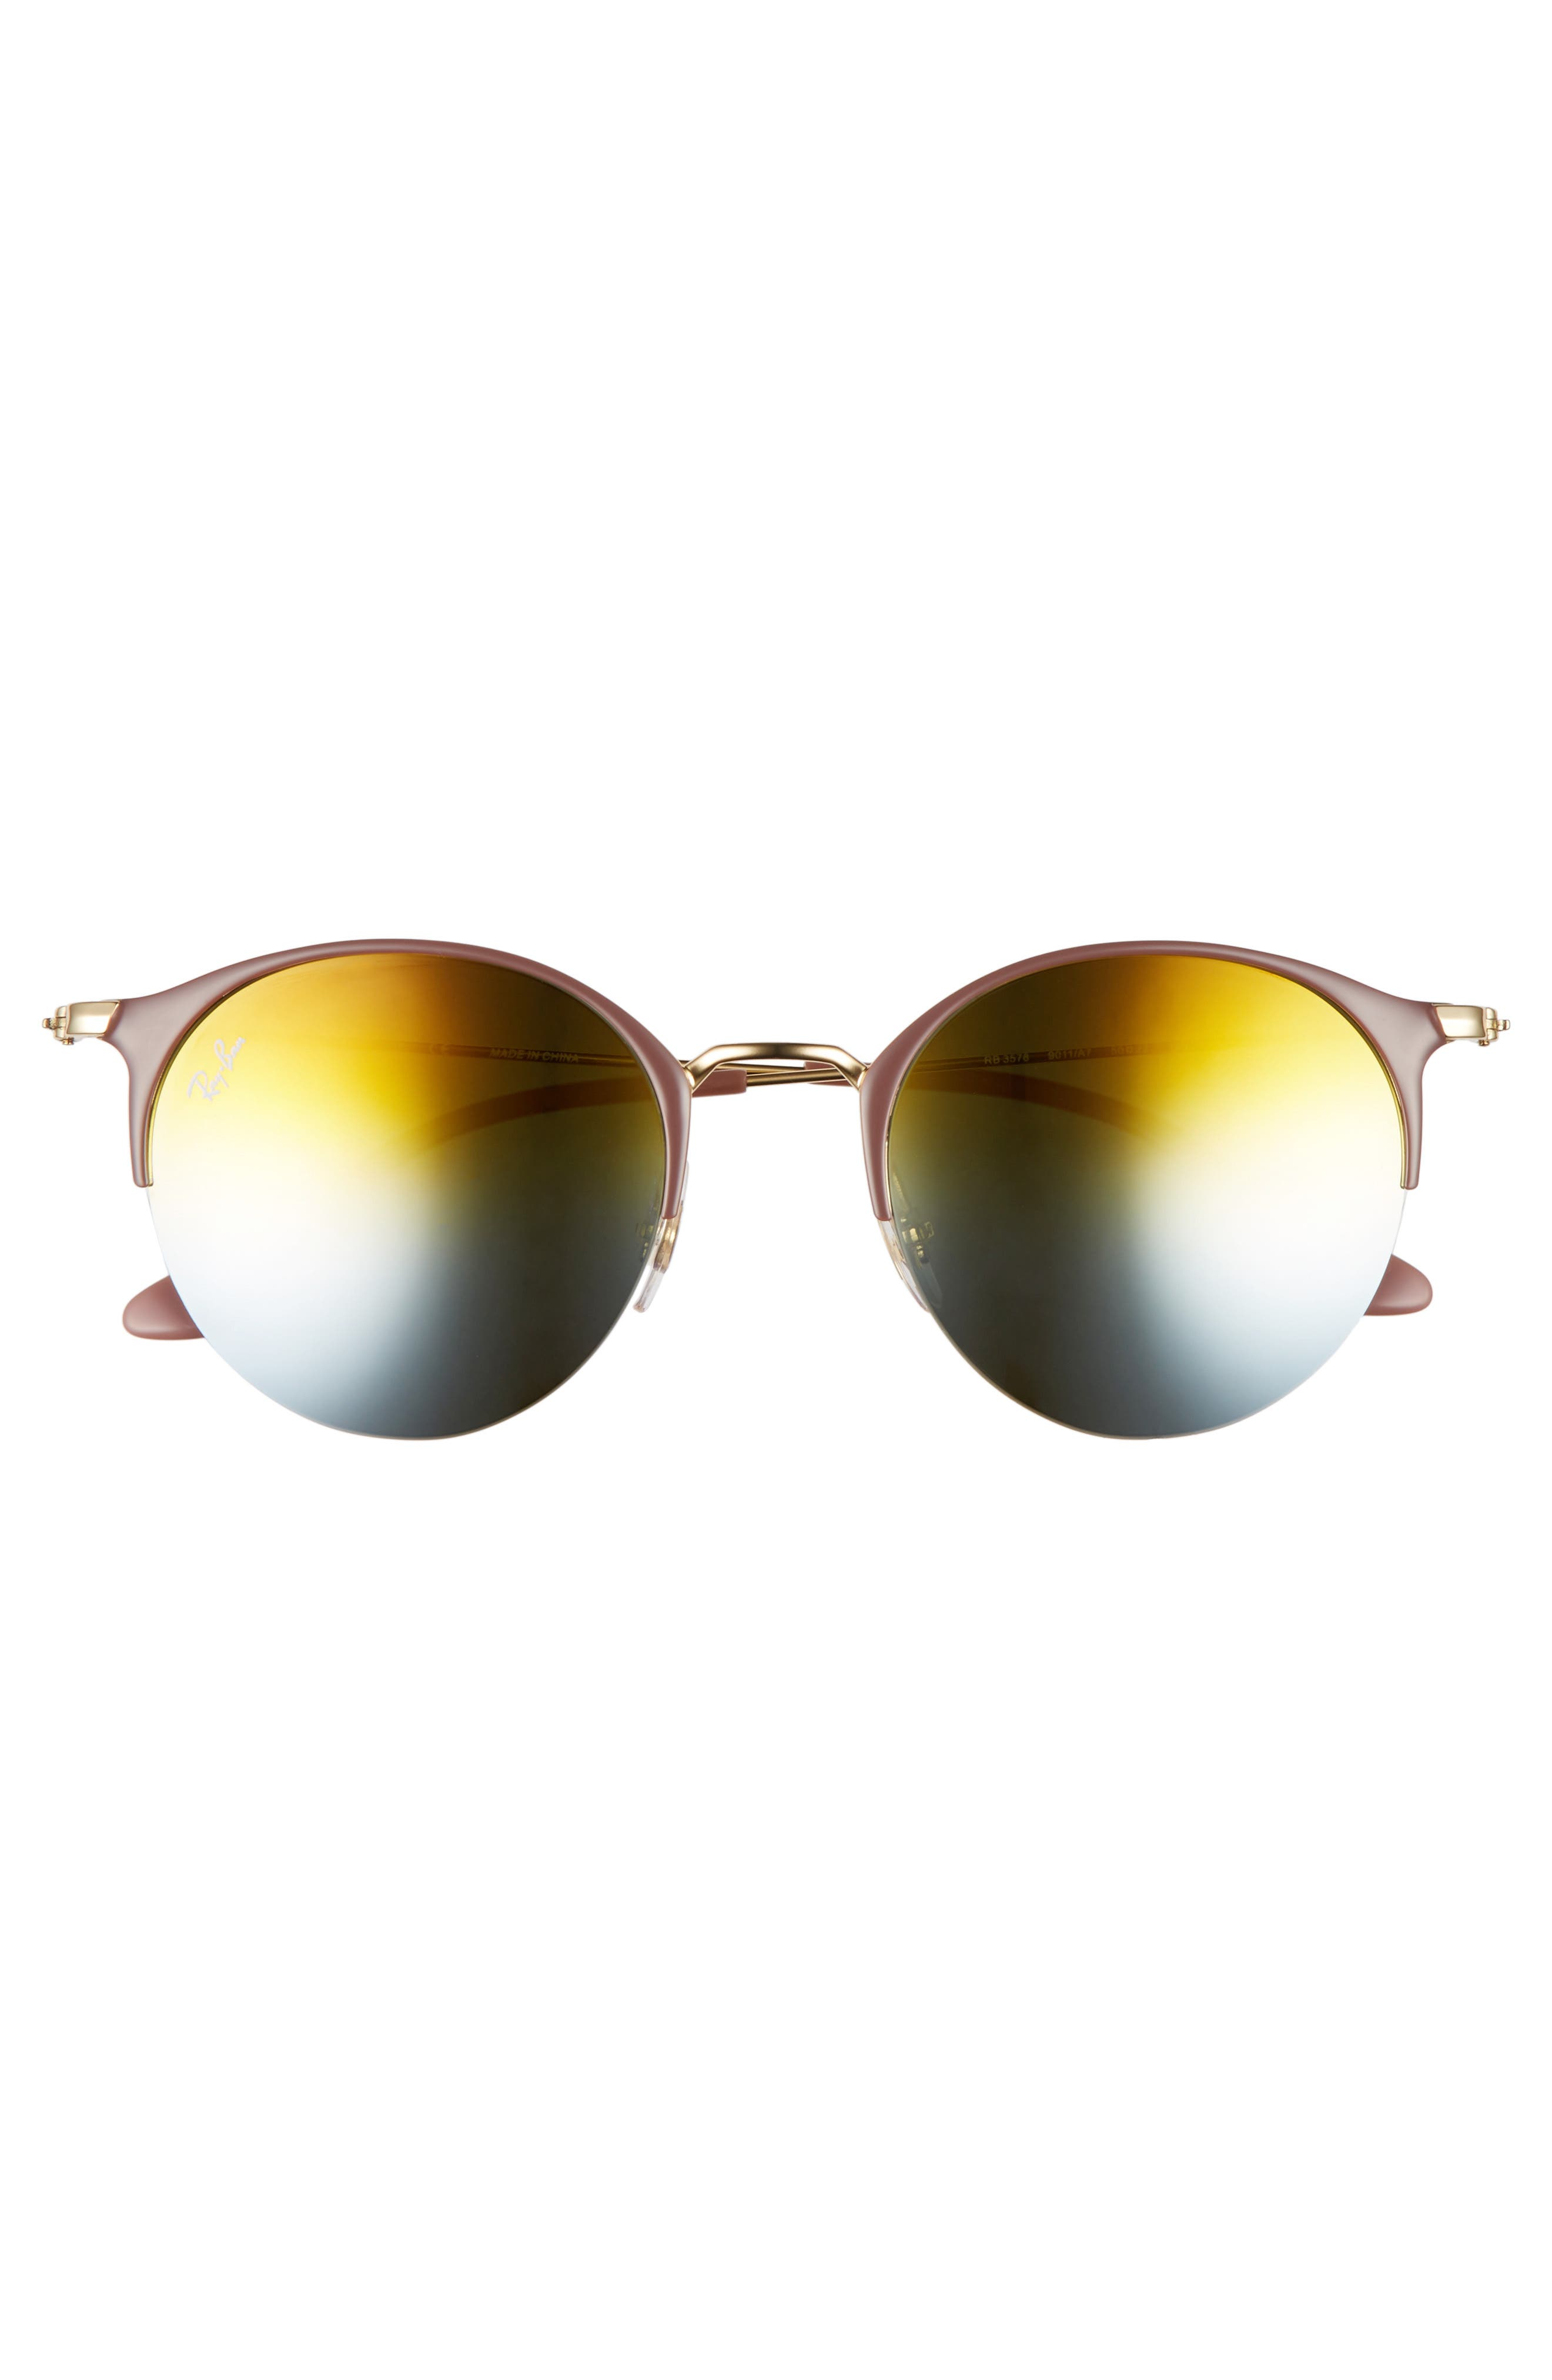 50mm Round Sunglasses,                             Alternate thumbnail 2, color,                             GOLD TOP/ GREEN GRADIENT